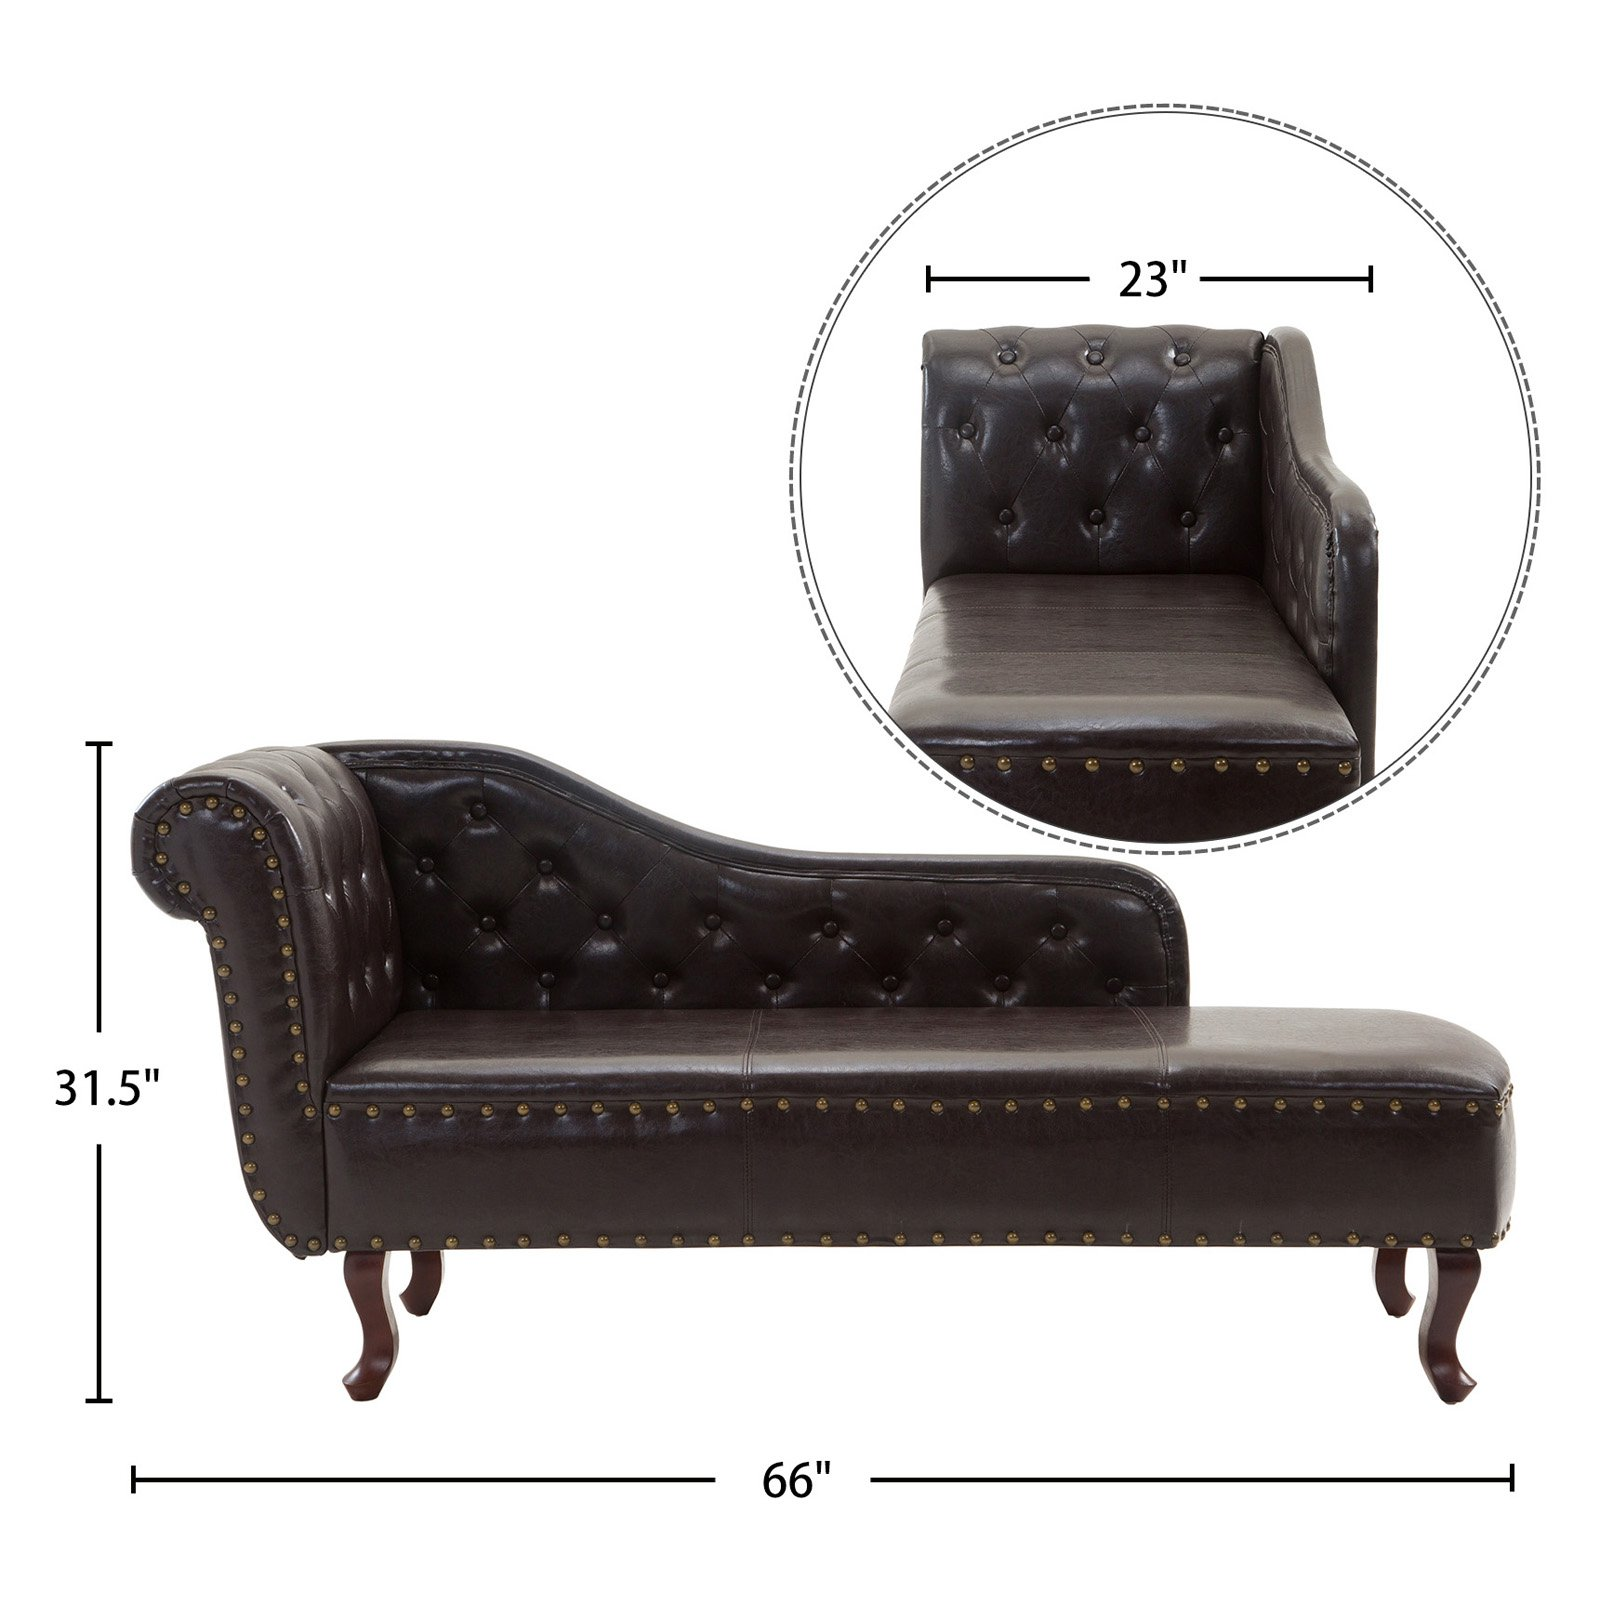 Cloud Mountain Tufted Faux Leather Chaise Lounge Walmart